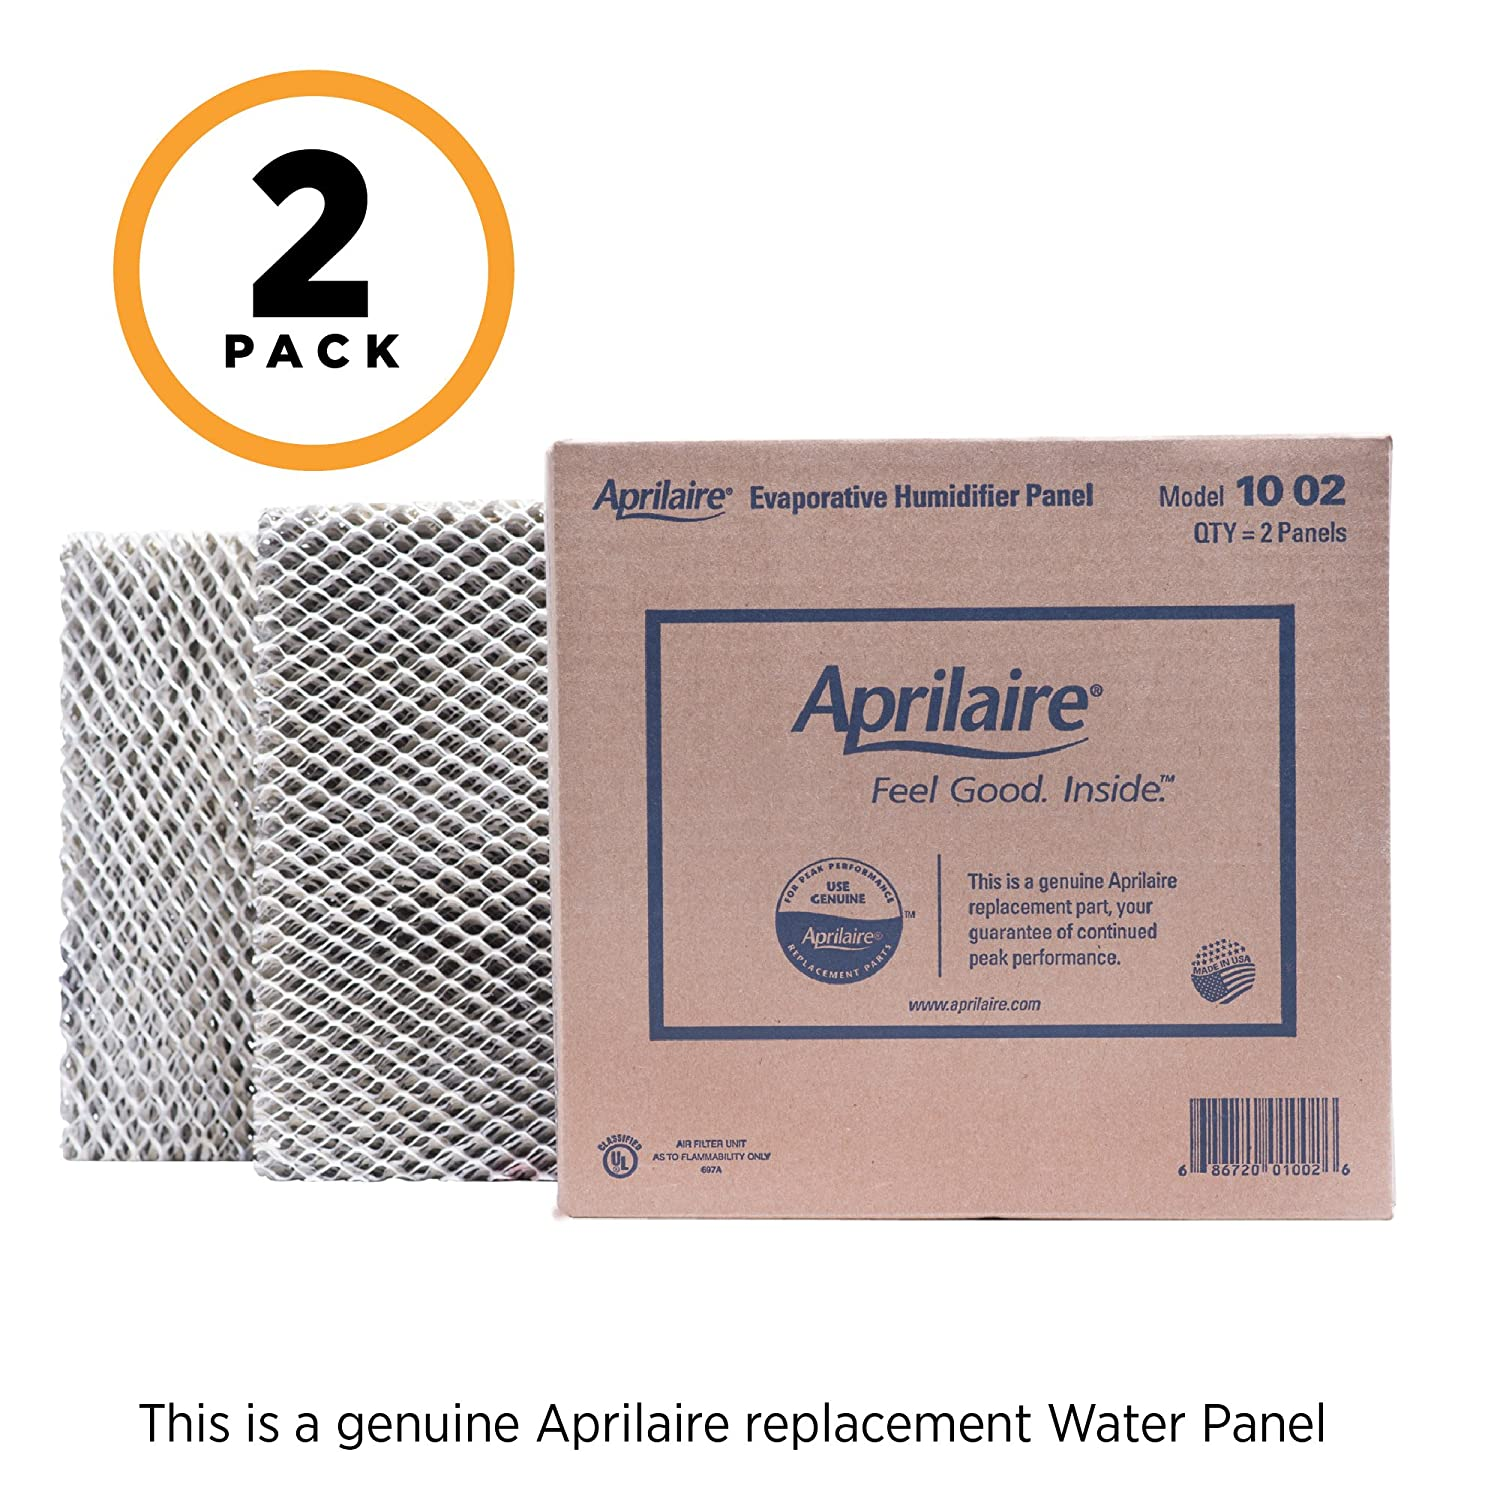 Aprilaire 10 Replacement Water Panel for Aprilaire Whole House Humidifier Models 110, 220, 500, 500A, 500M, 550, 558 Pack of 2